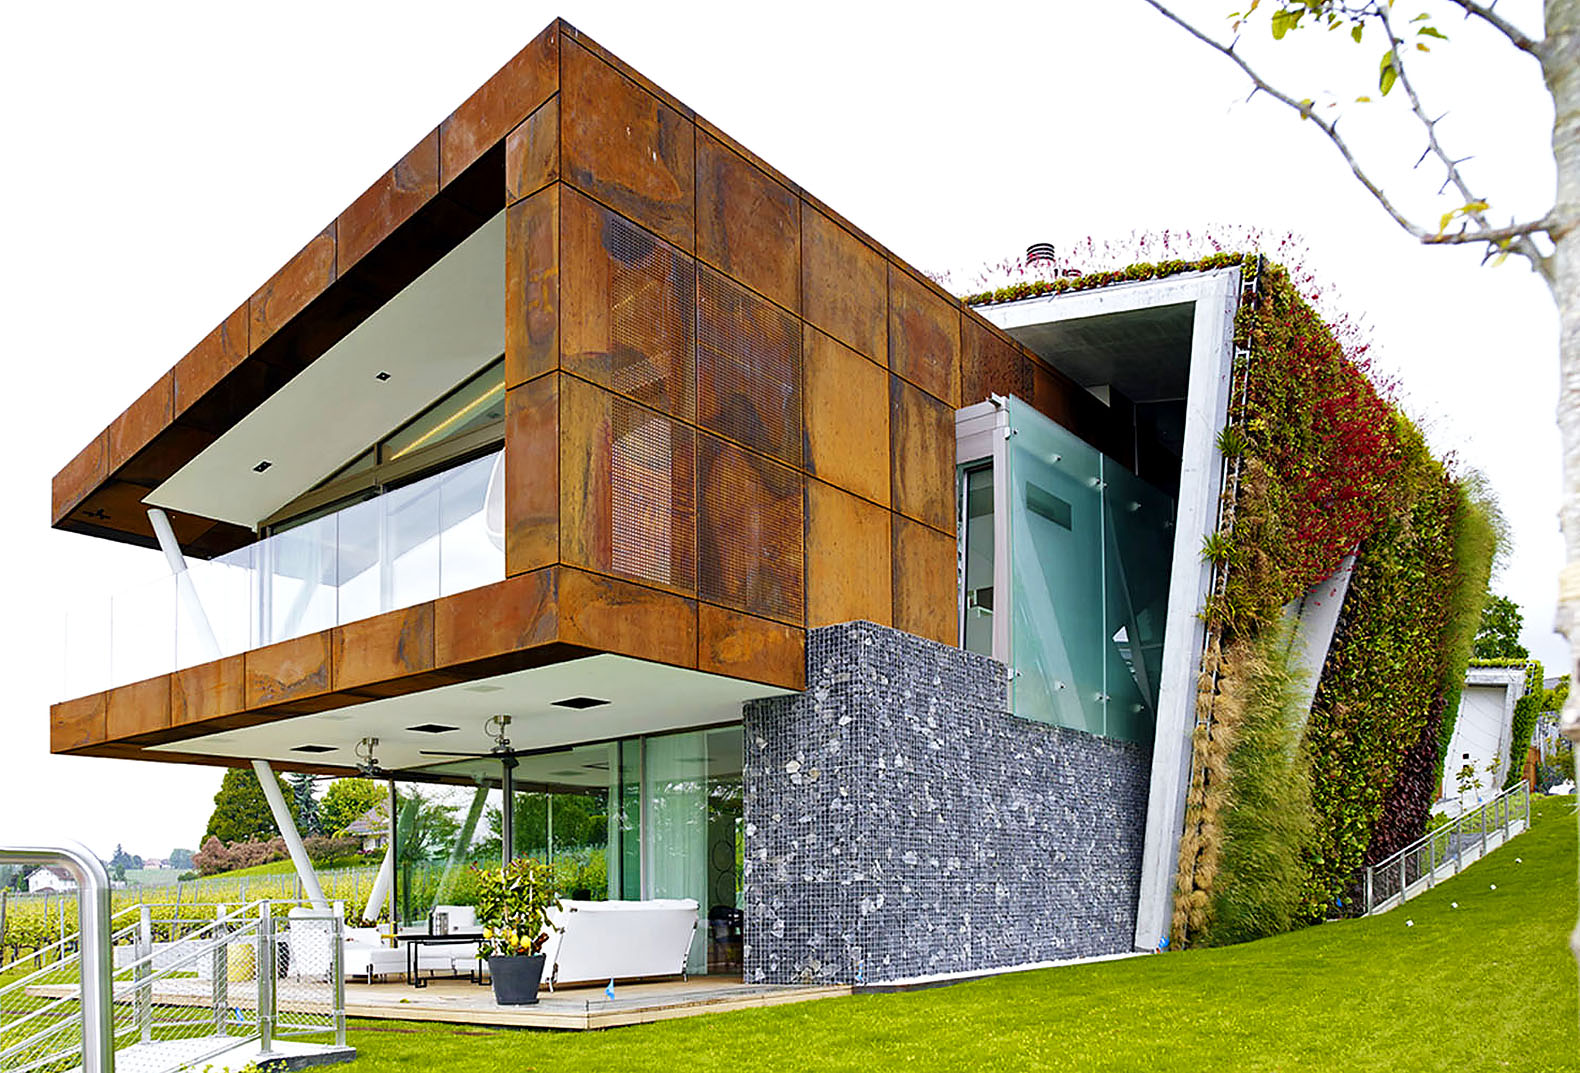 Contemporary Jewel Box Villa in Switzerland